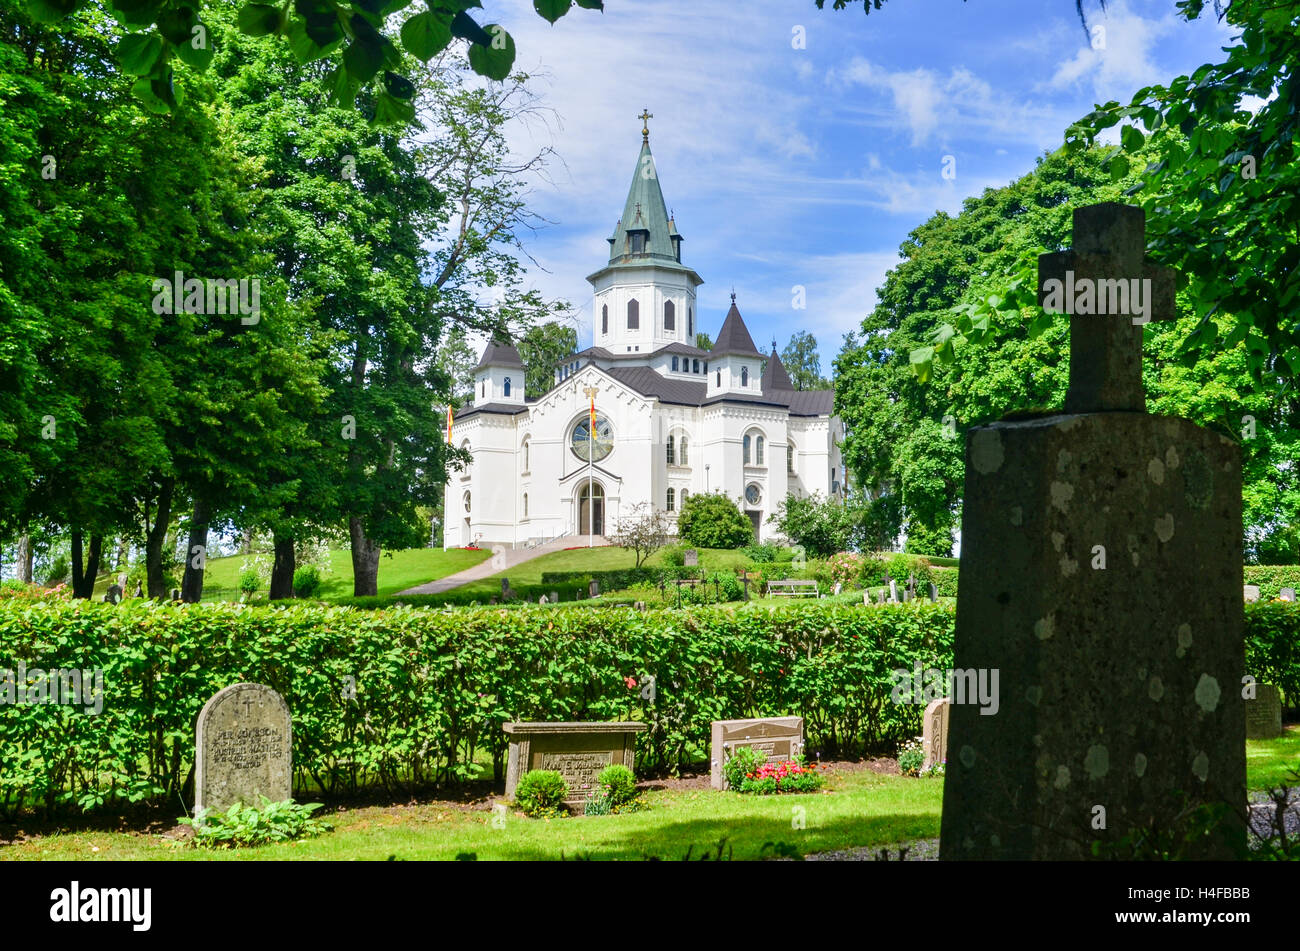 Church and cemetery in Sillerud, Sweden Stock Photo